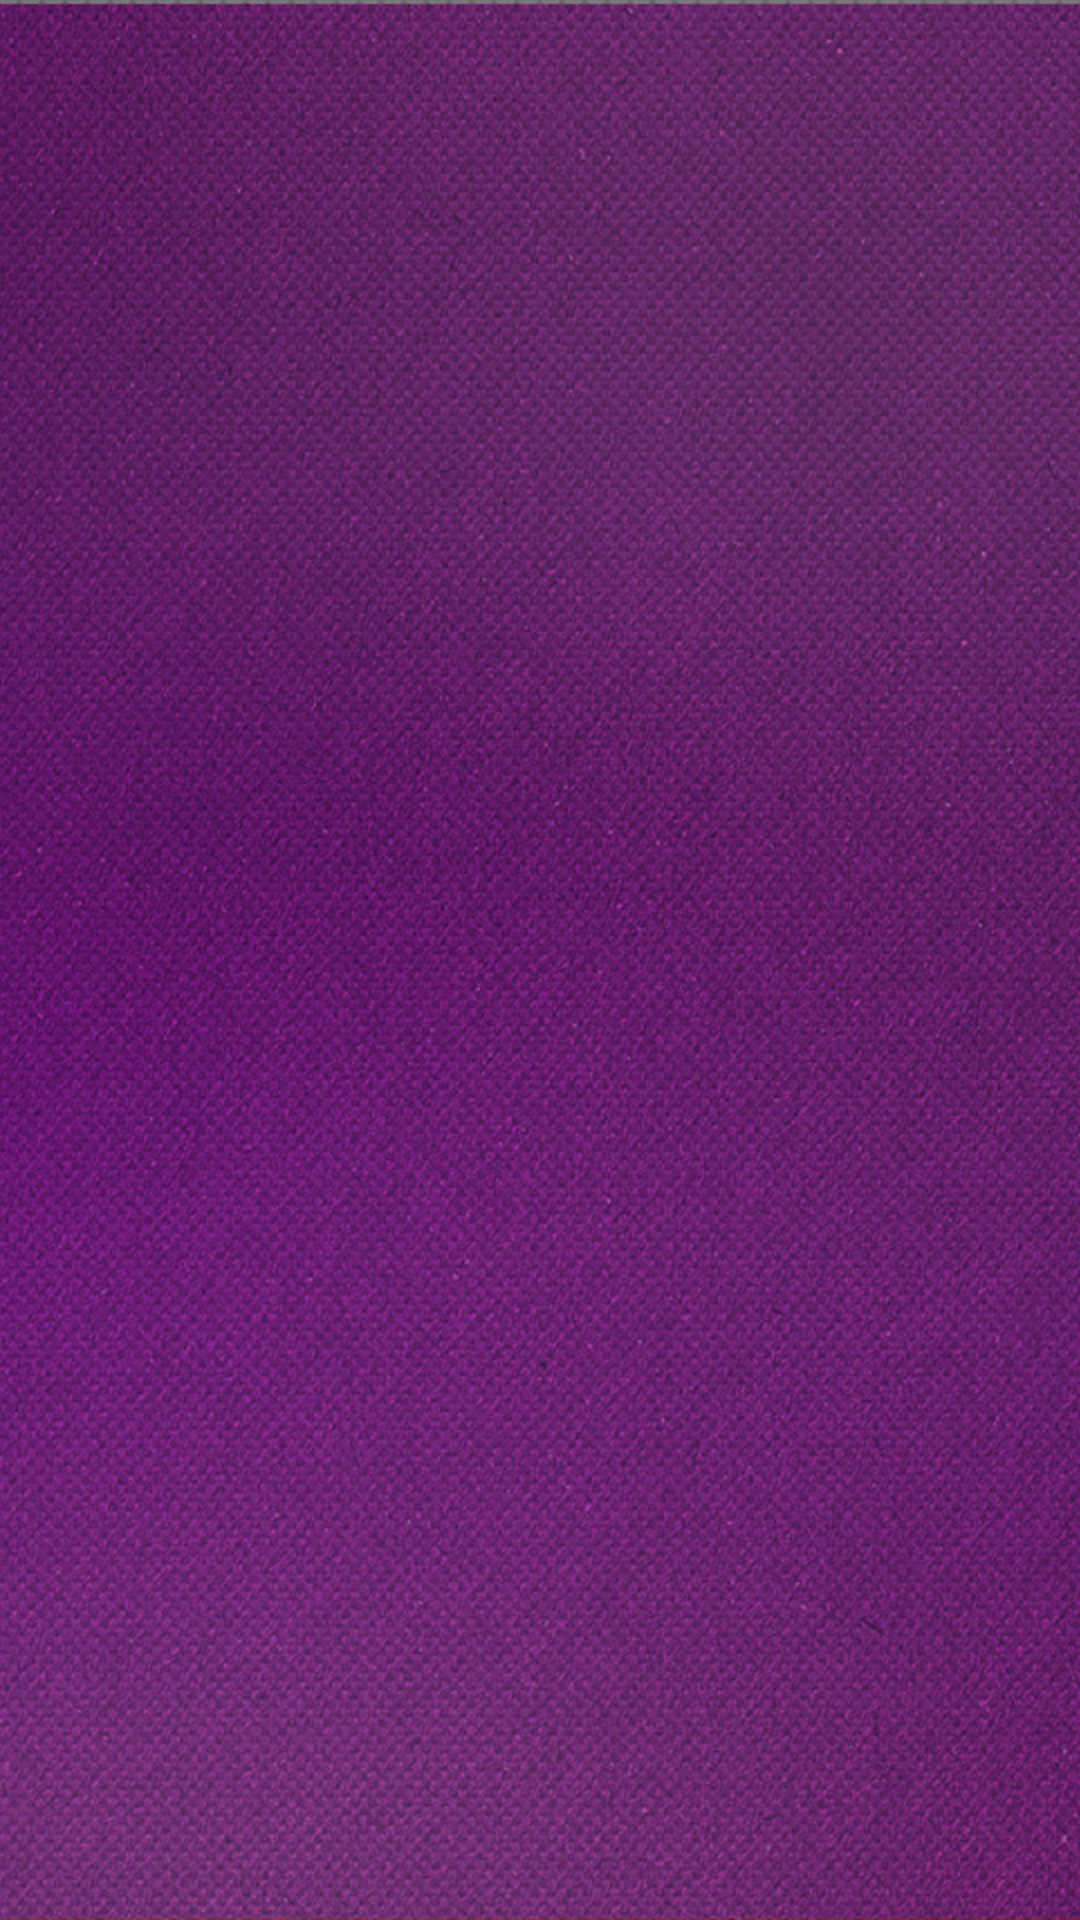 Purple Wallpapers For Iphone 6